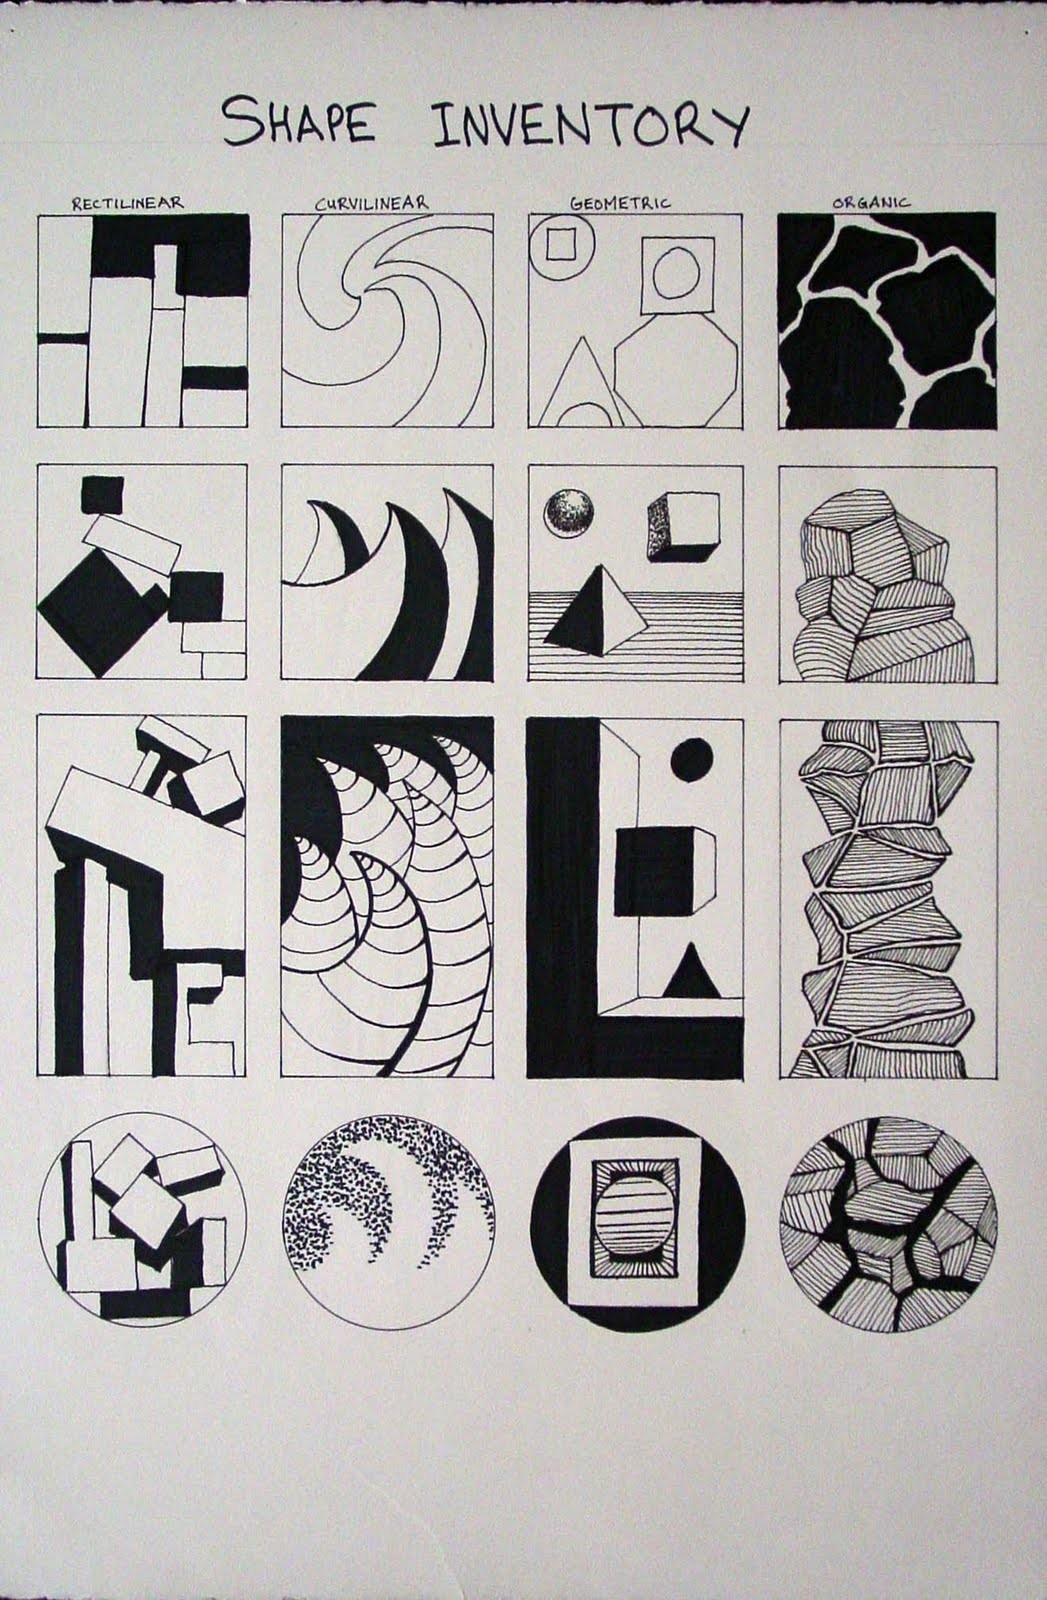 Art 3 Intro To Art And Design With William Smith: Shape: Inventory throughout Organic Shapes In Nature Art 25643